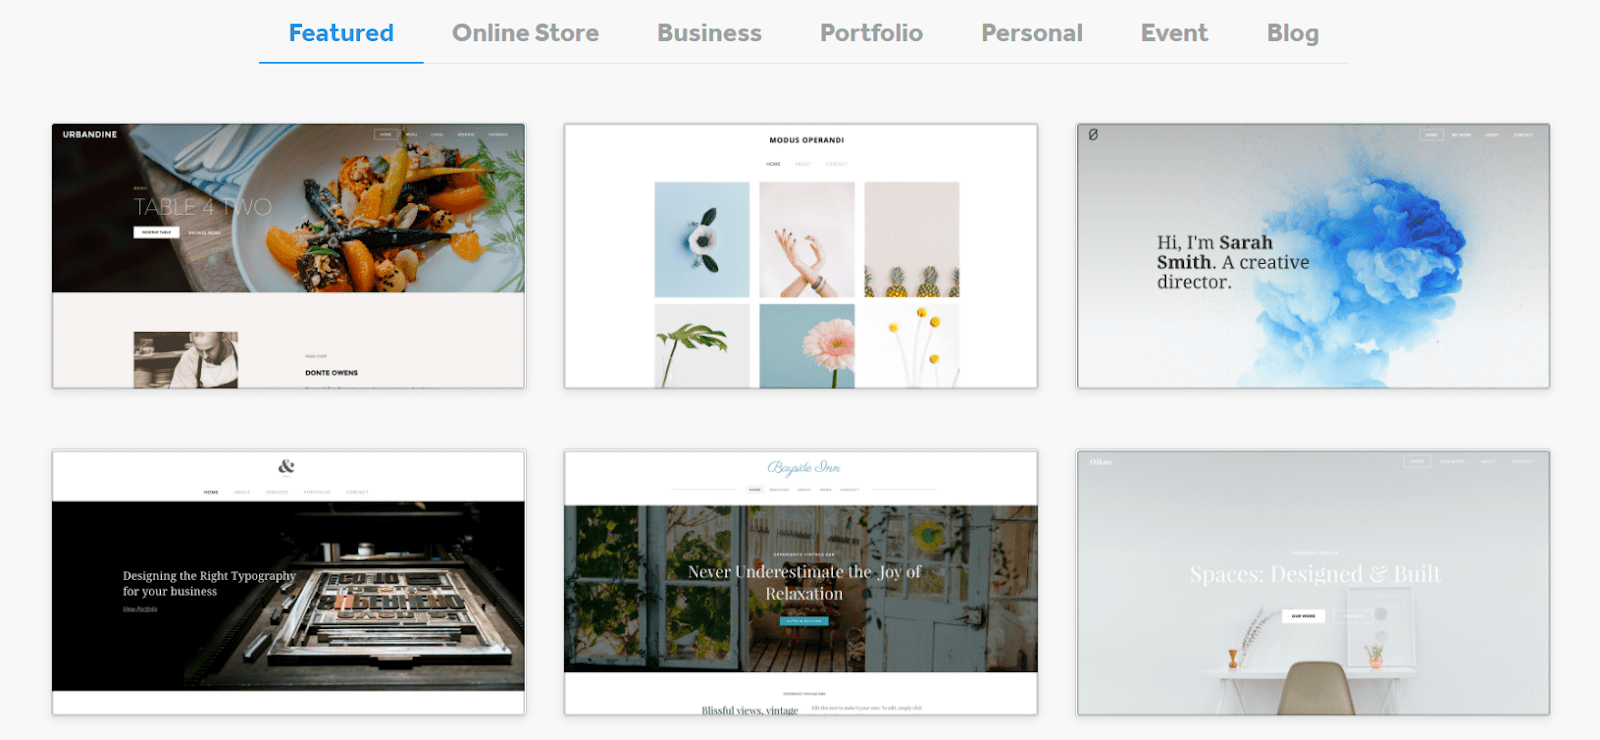 Featured Weebly themes